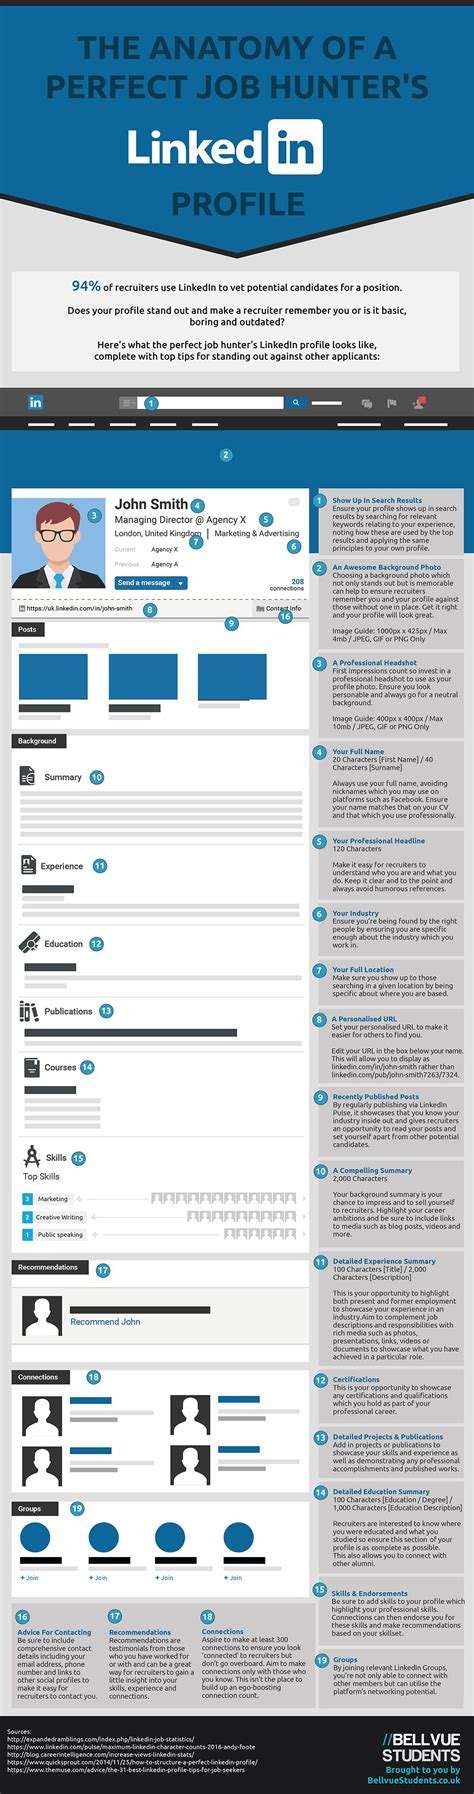 Search For On Linkedin The Anatomy Of A S Linkedin Profile